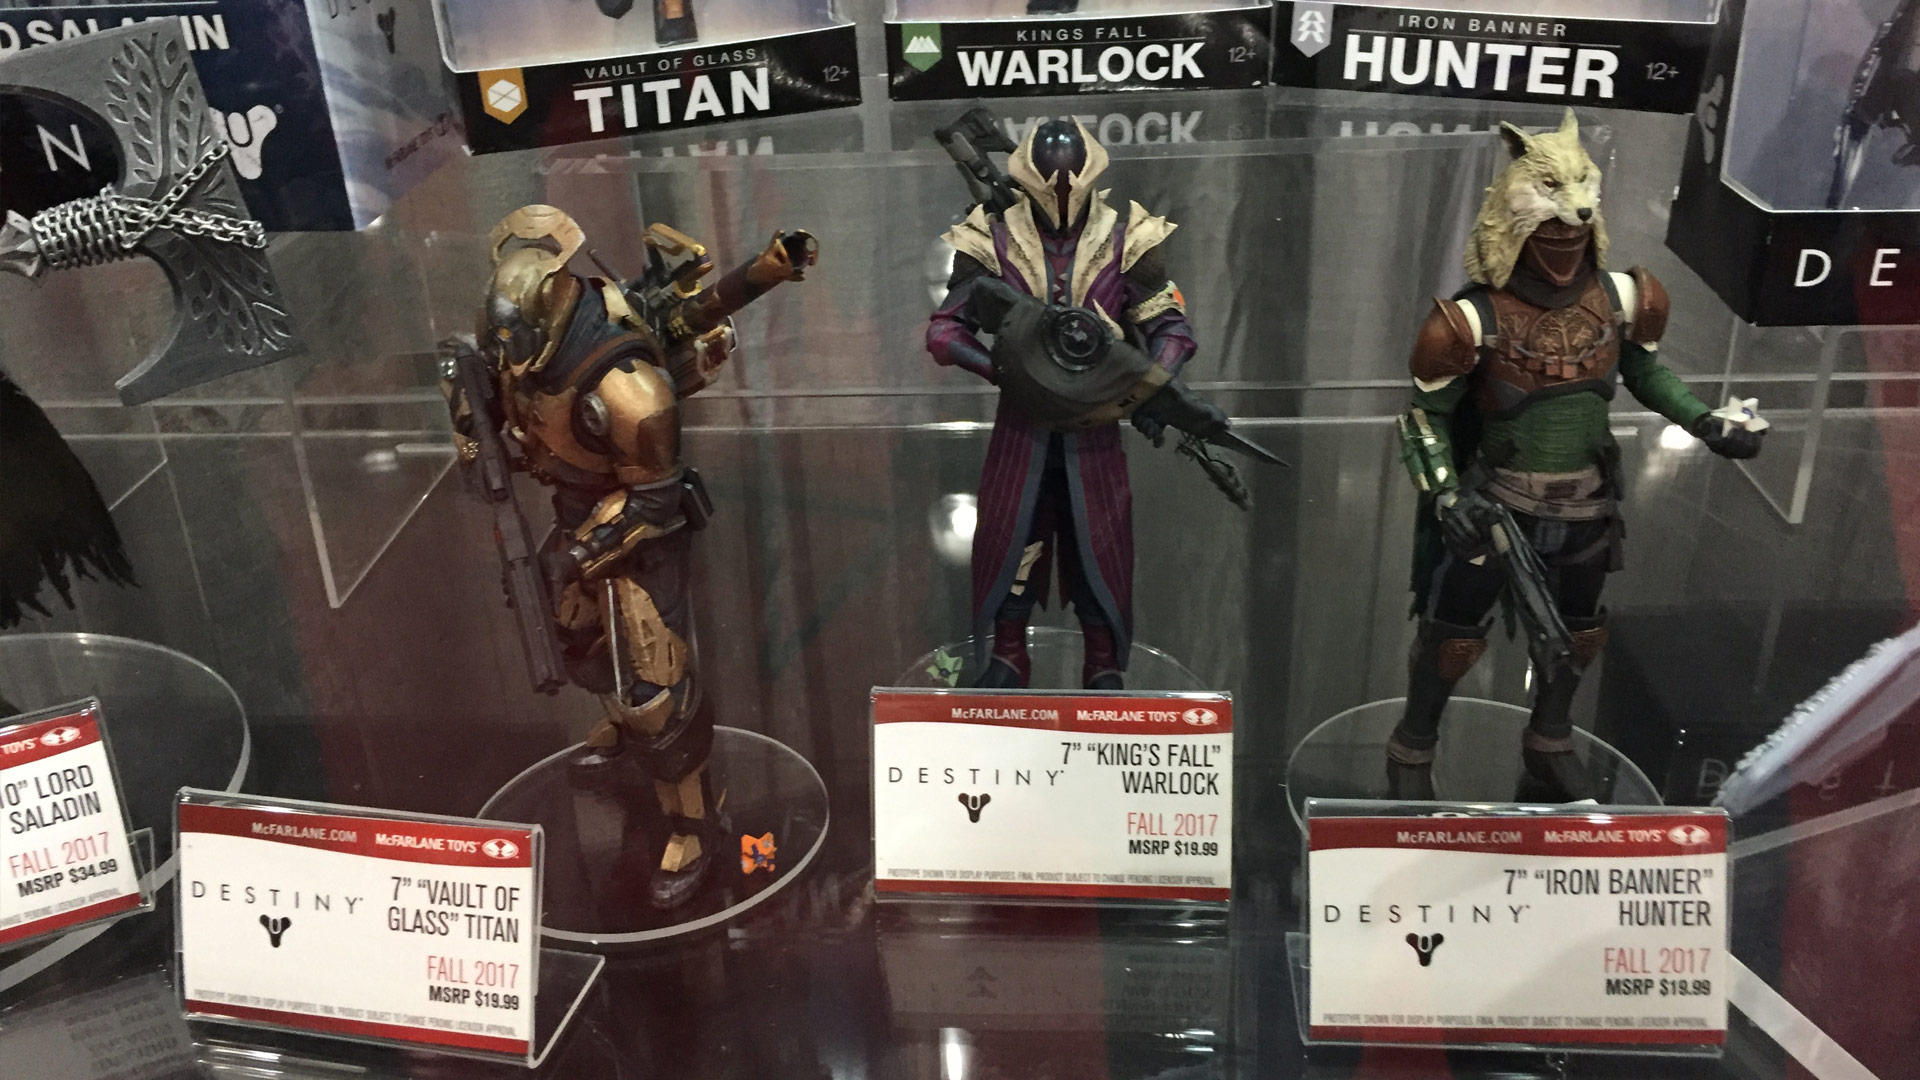 Destiny 2017 Figures at Toy Fair 2017 featuring Titan, Warlock and Hunter